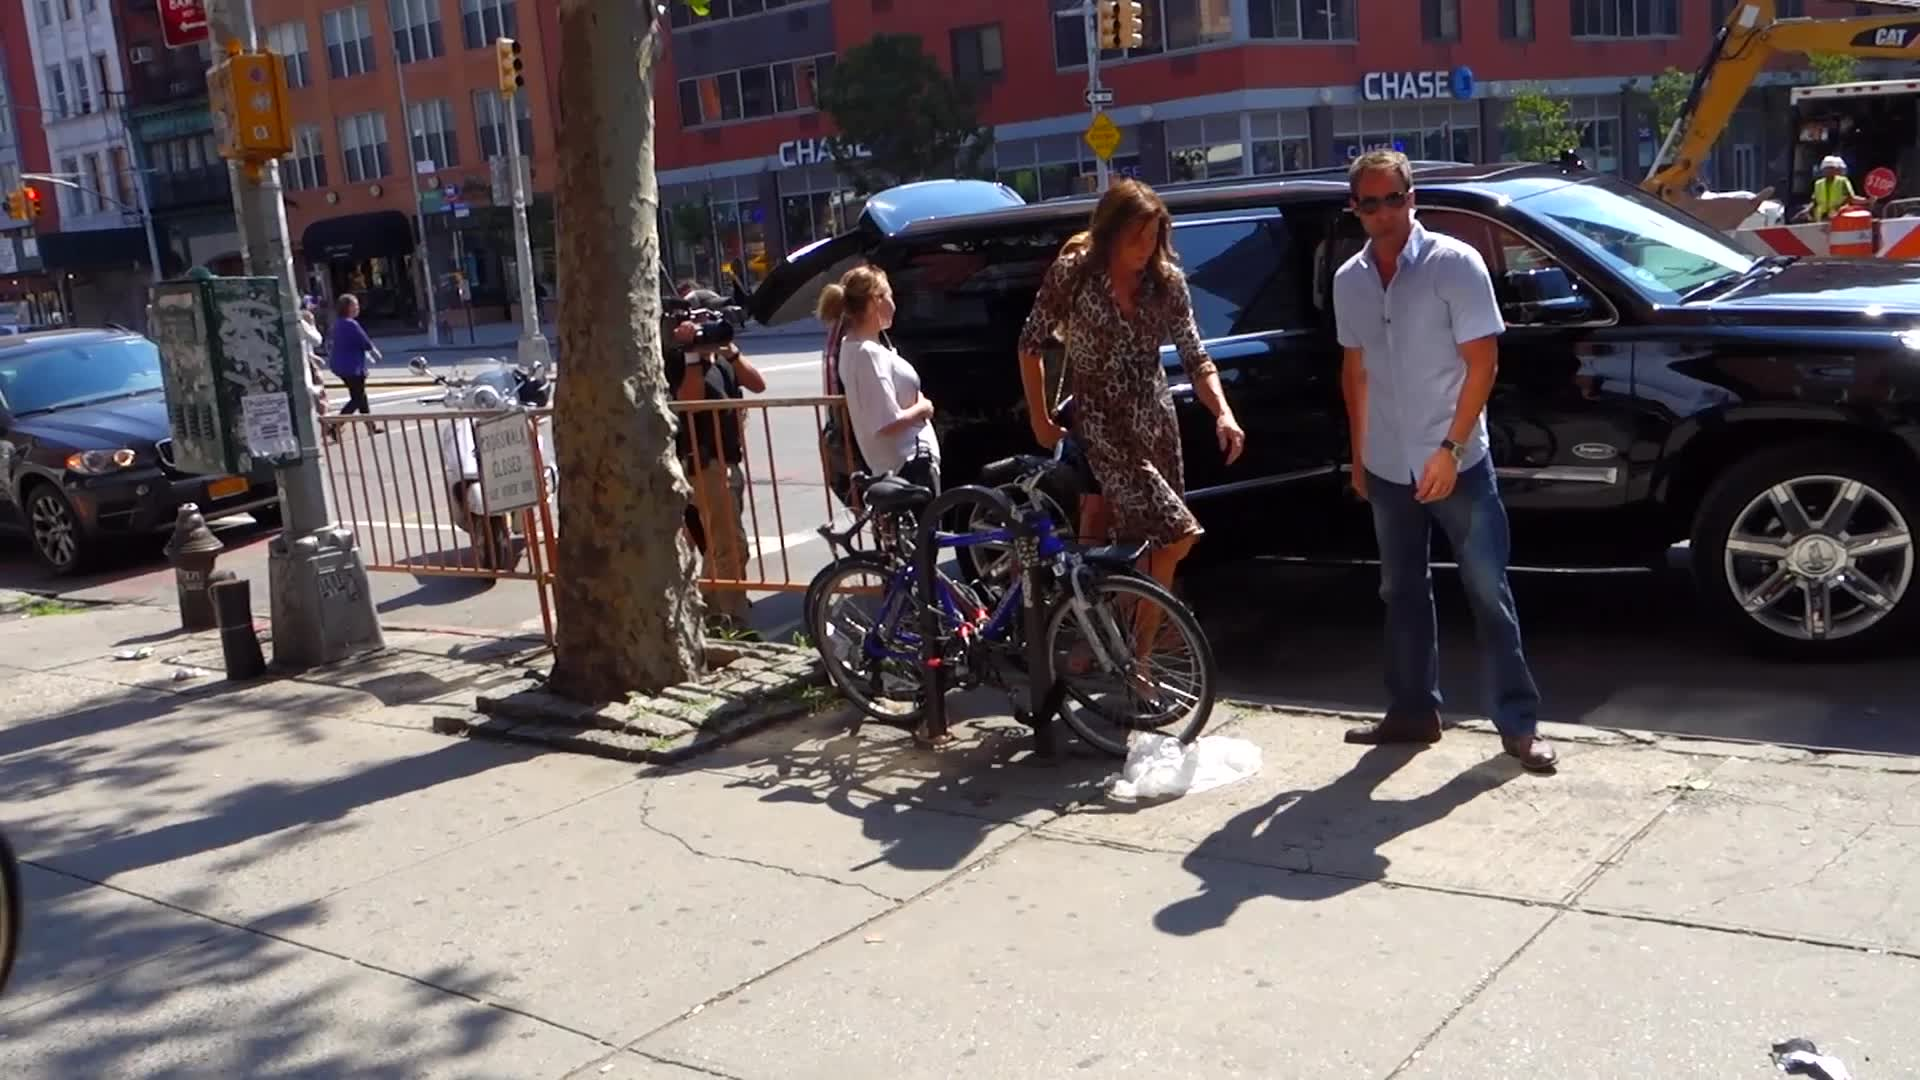 Caitlyn Jenner Makes NYC Roar in an Animal Print Dress and Sequin Skirt